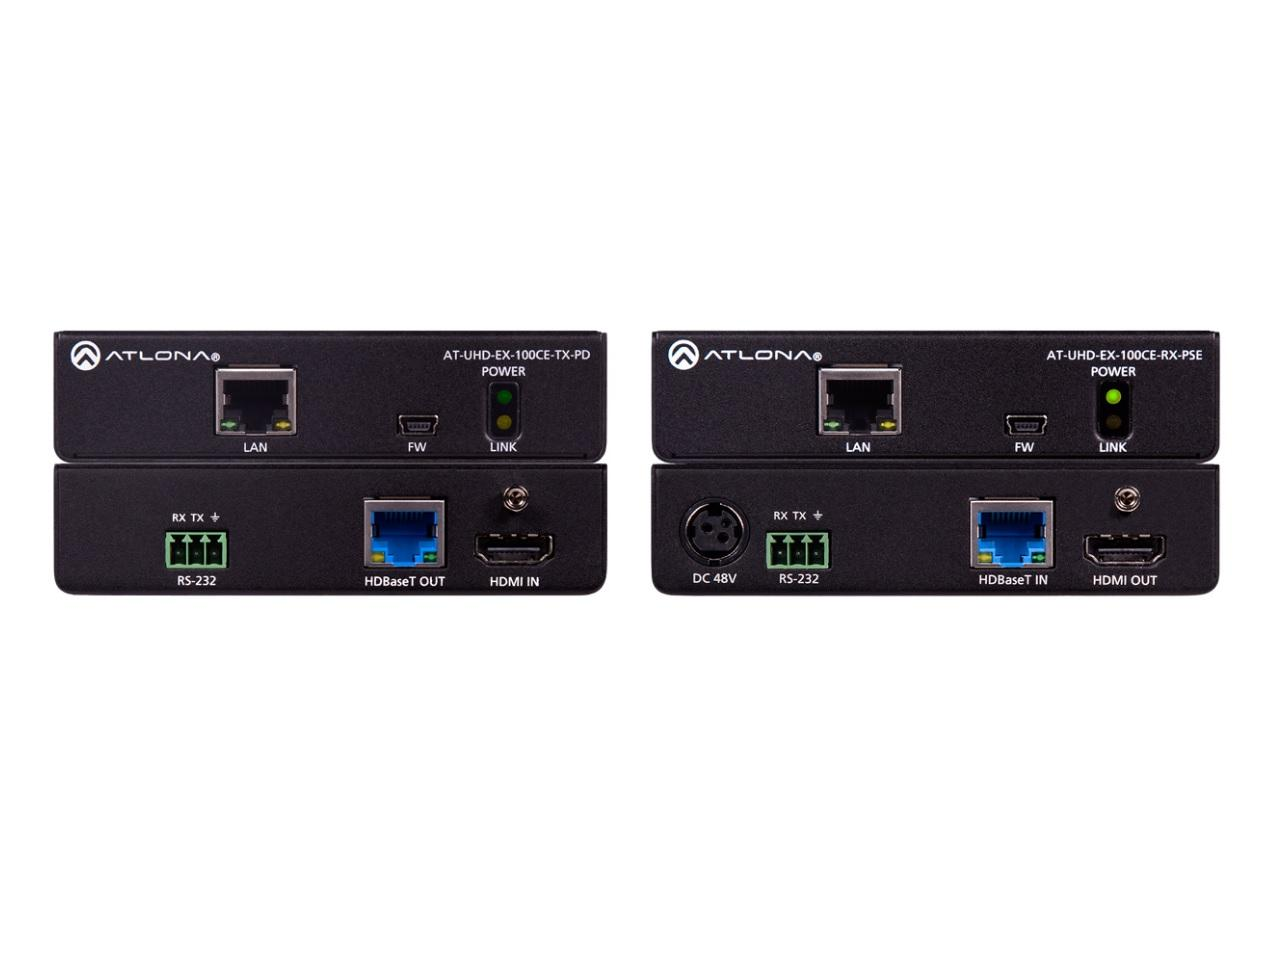 100CER-PoE-EXT 4K/UHD HDMI HDBaseT (Transmitter/Receiver) Kit with Ethernet/Control/PoE by Atlona